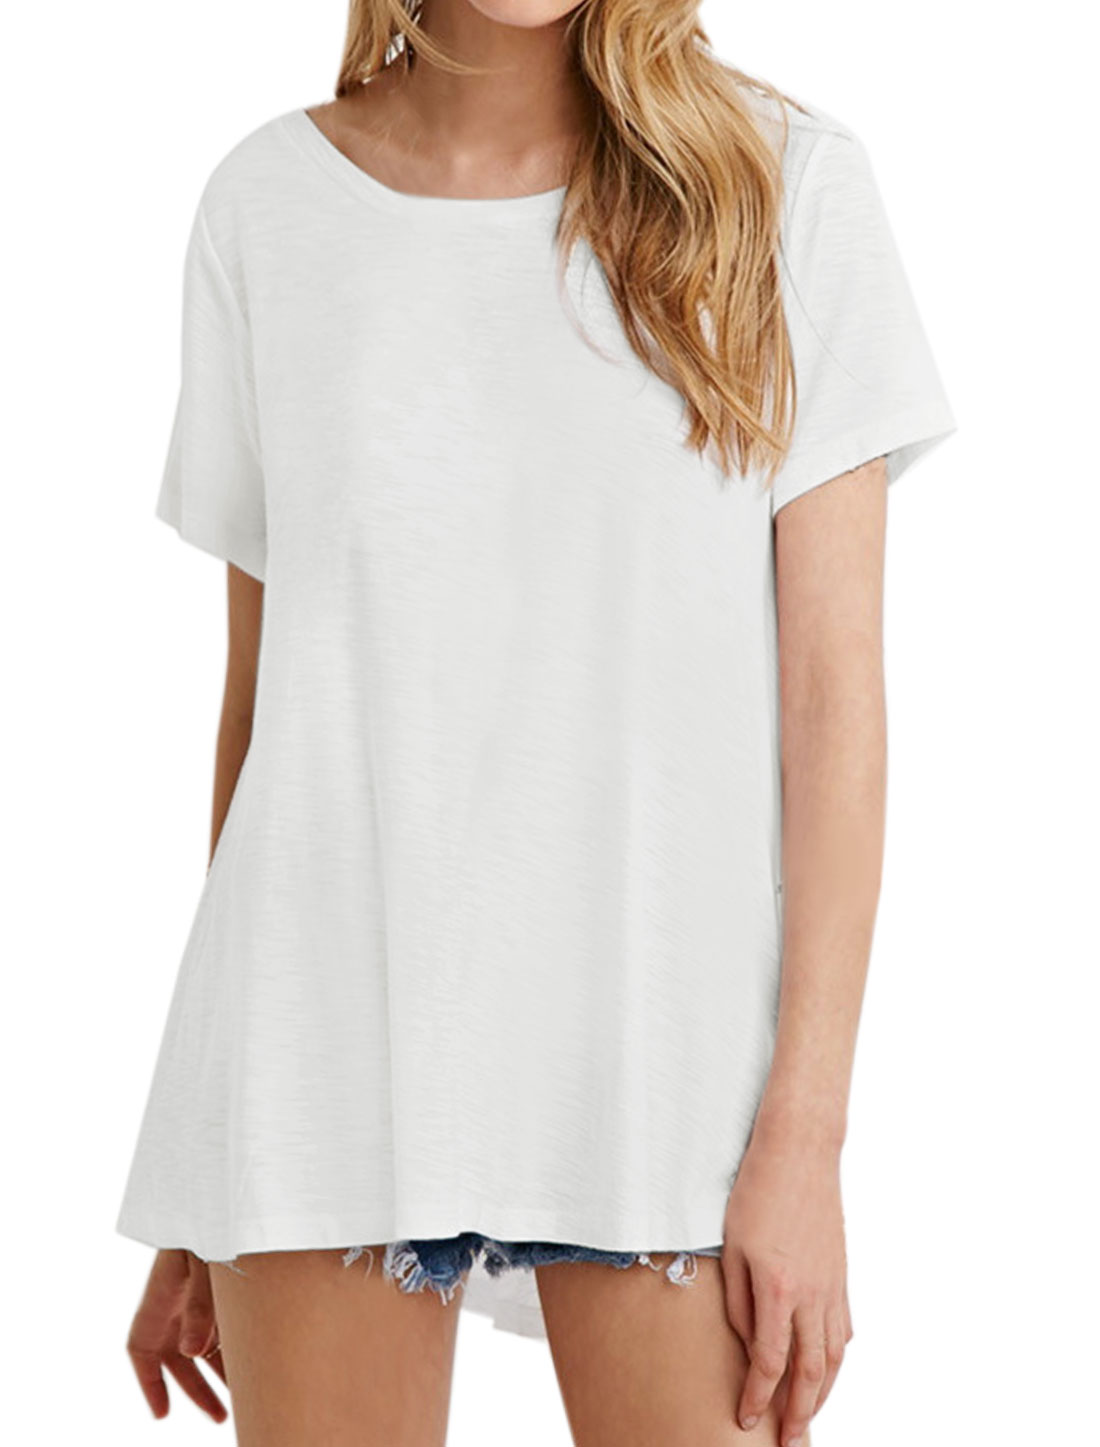 Women Round Neck Short Sleeves Loose Tee White XS